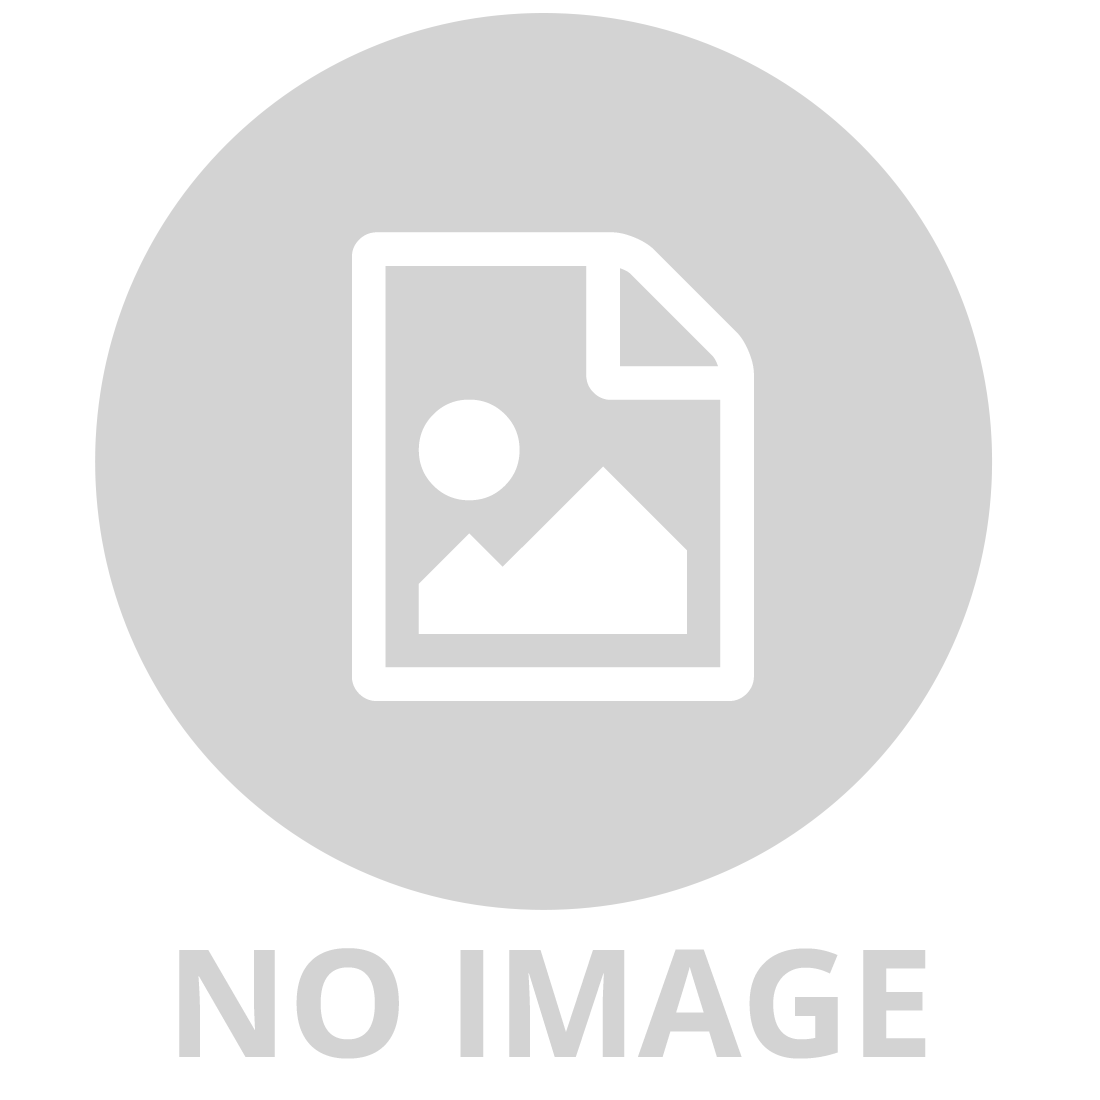 TAMIYA TS-4 GERMAN GREY SPRAY PAINT FOR PLASTICS